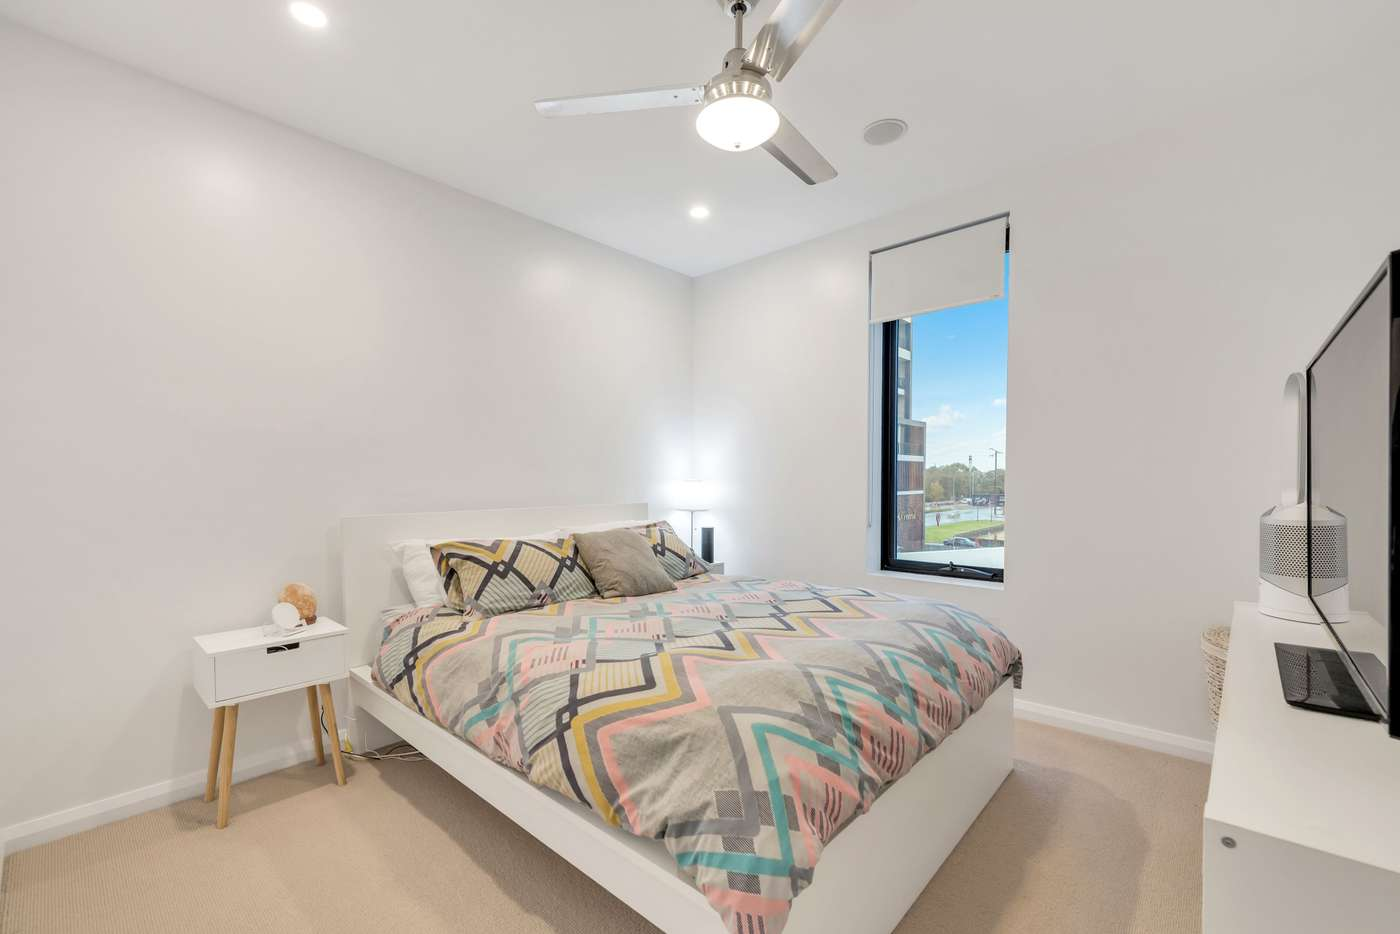 Sixth view of Homely unit listing, 402/3 Fourth Street, Bowden SA 5007